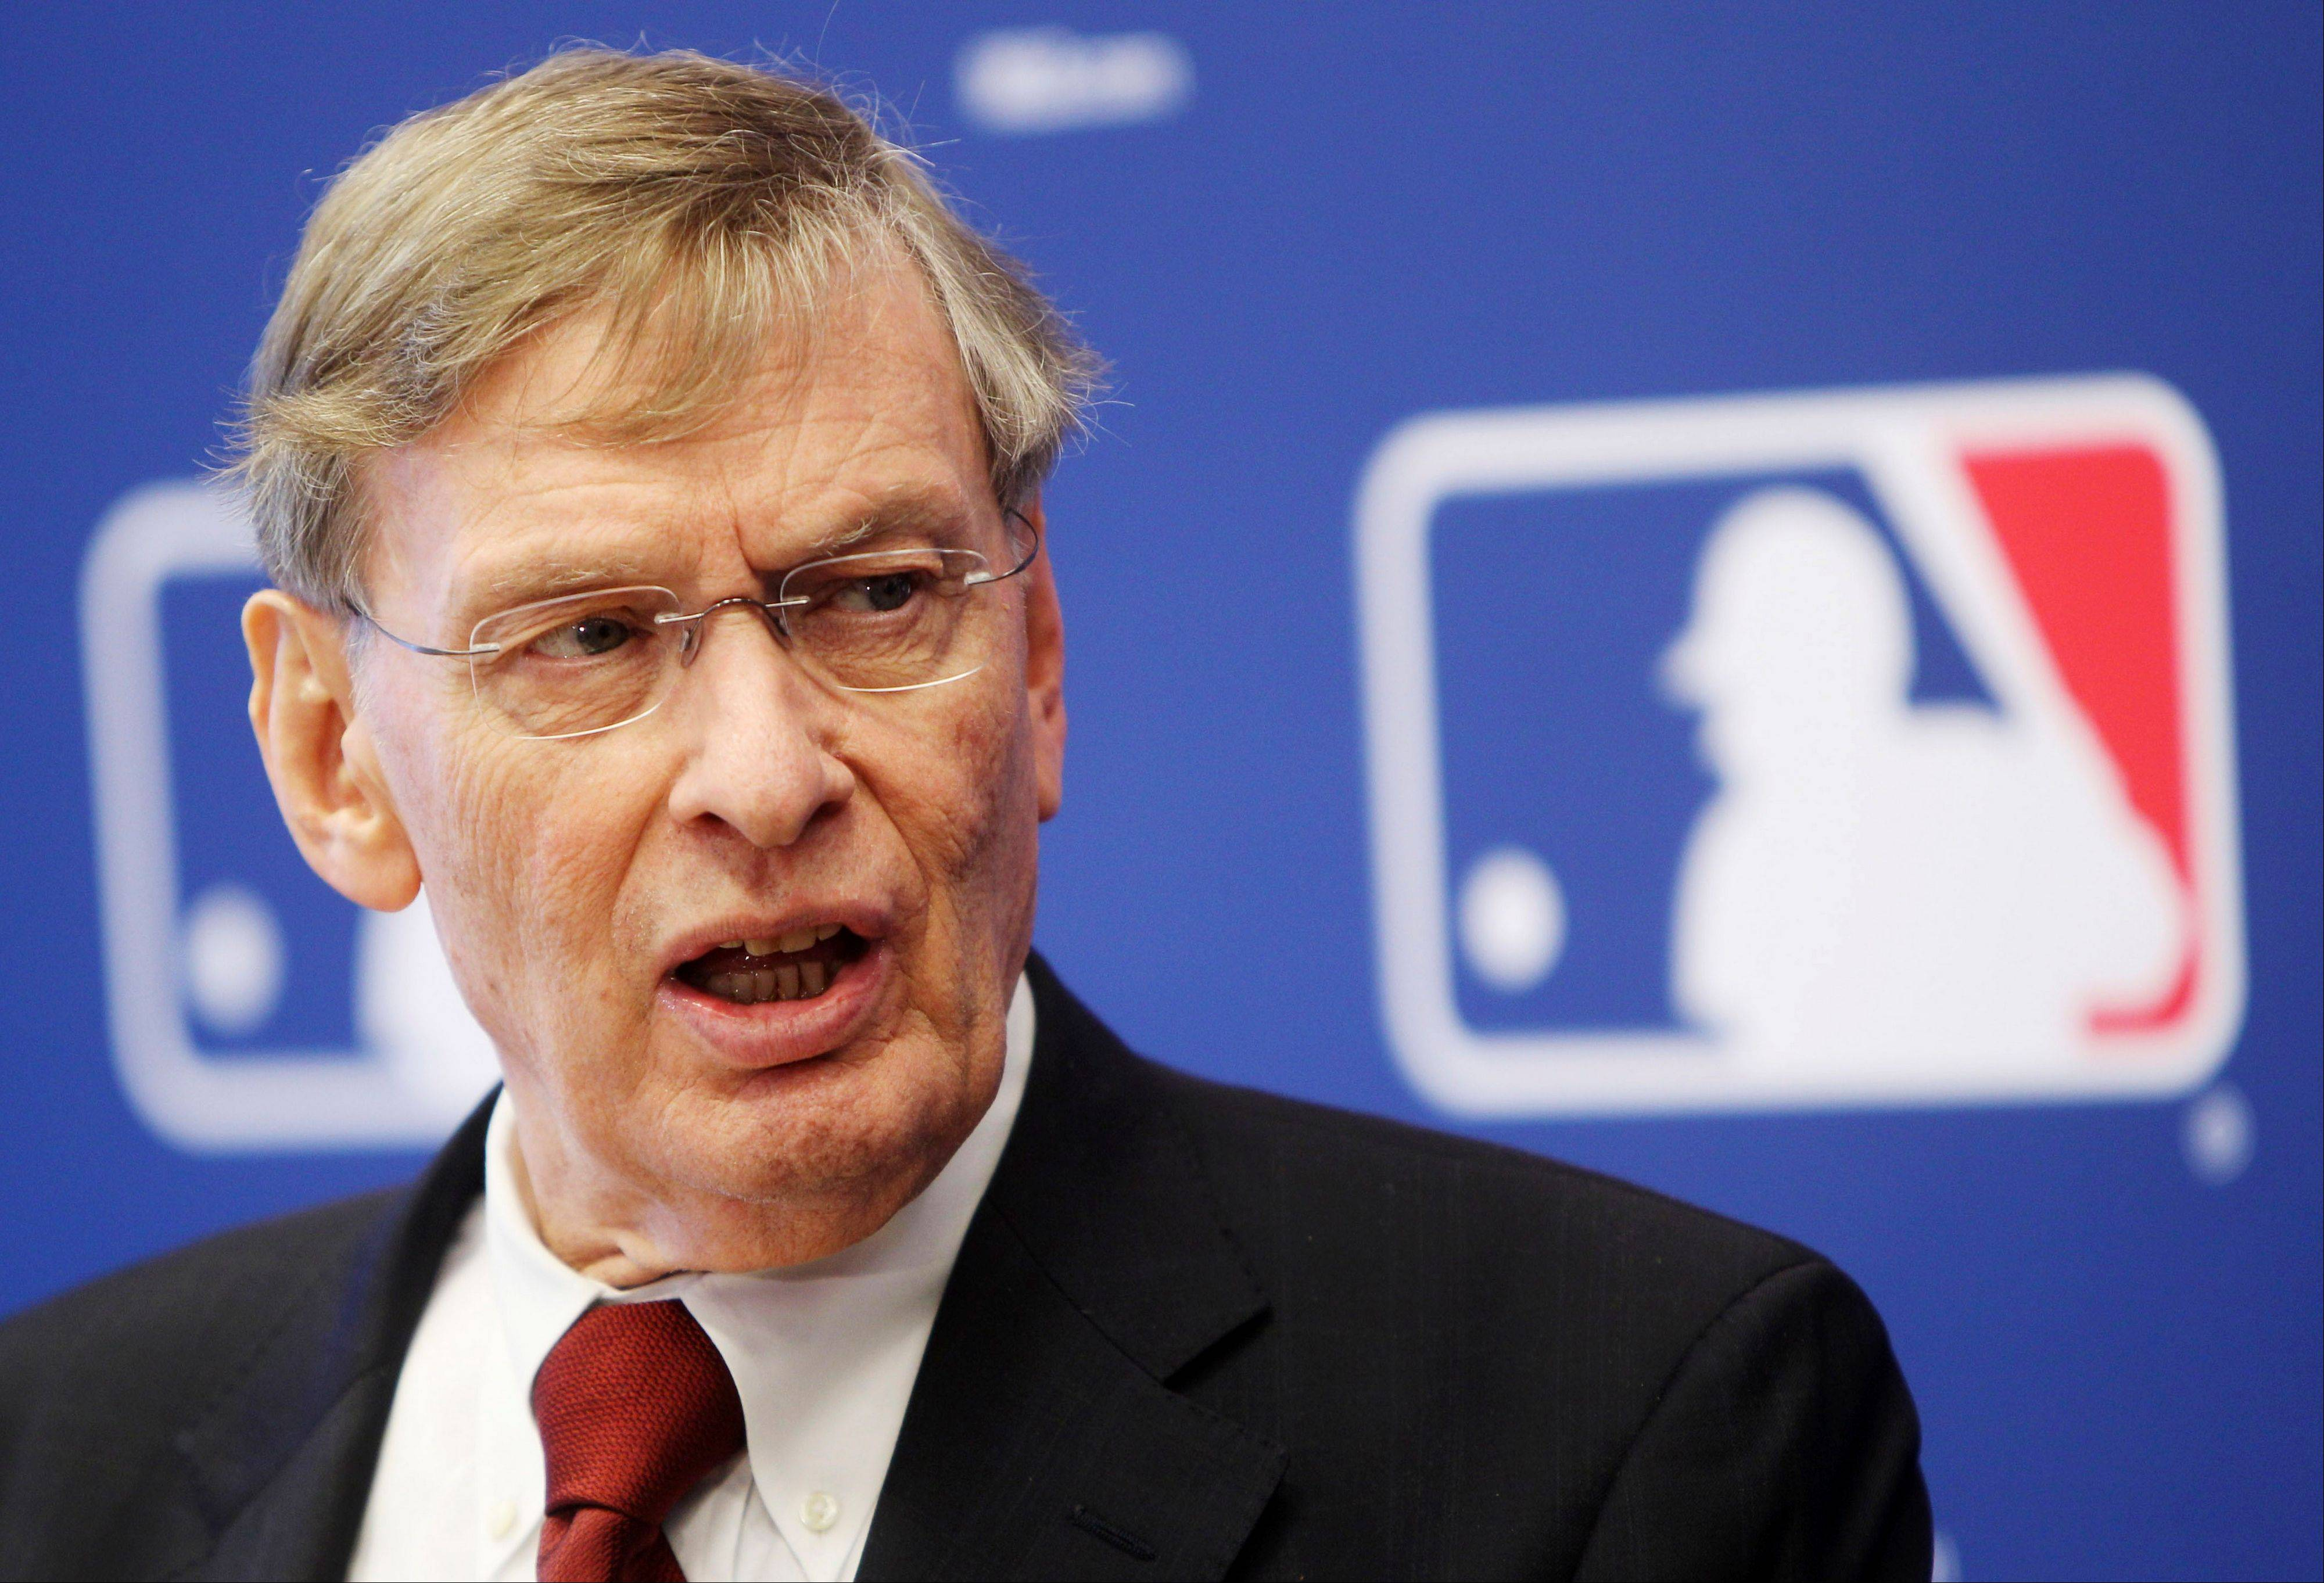 Major League Baseball Commissioner Bud Selig says �Baseball must do everything it can to maintain integrity, fairness and a level playing field.�